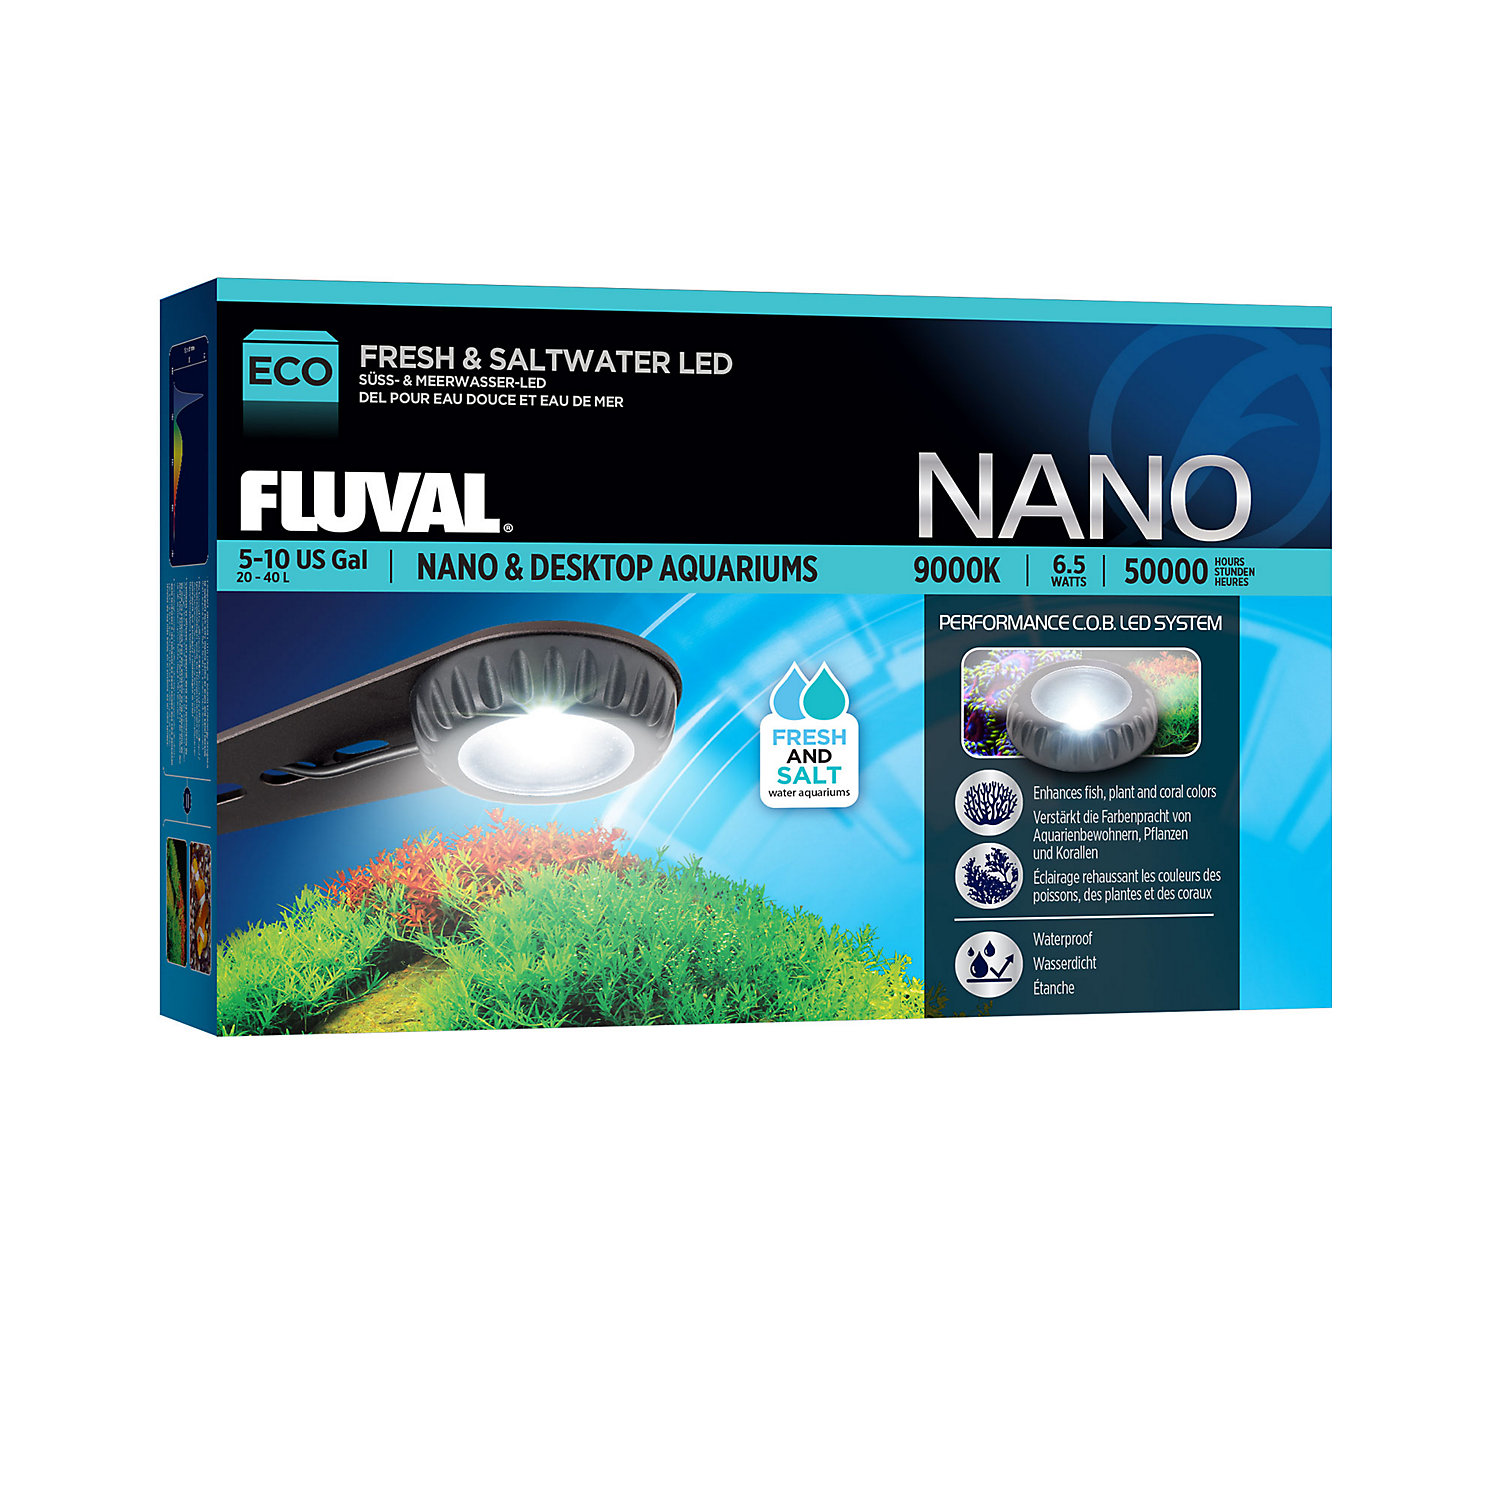 Fluval Eco Nano Desktop Led Aquarium Light